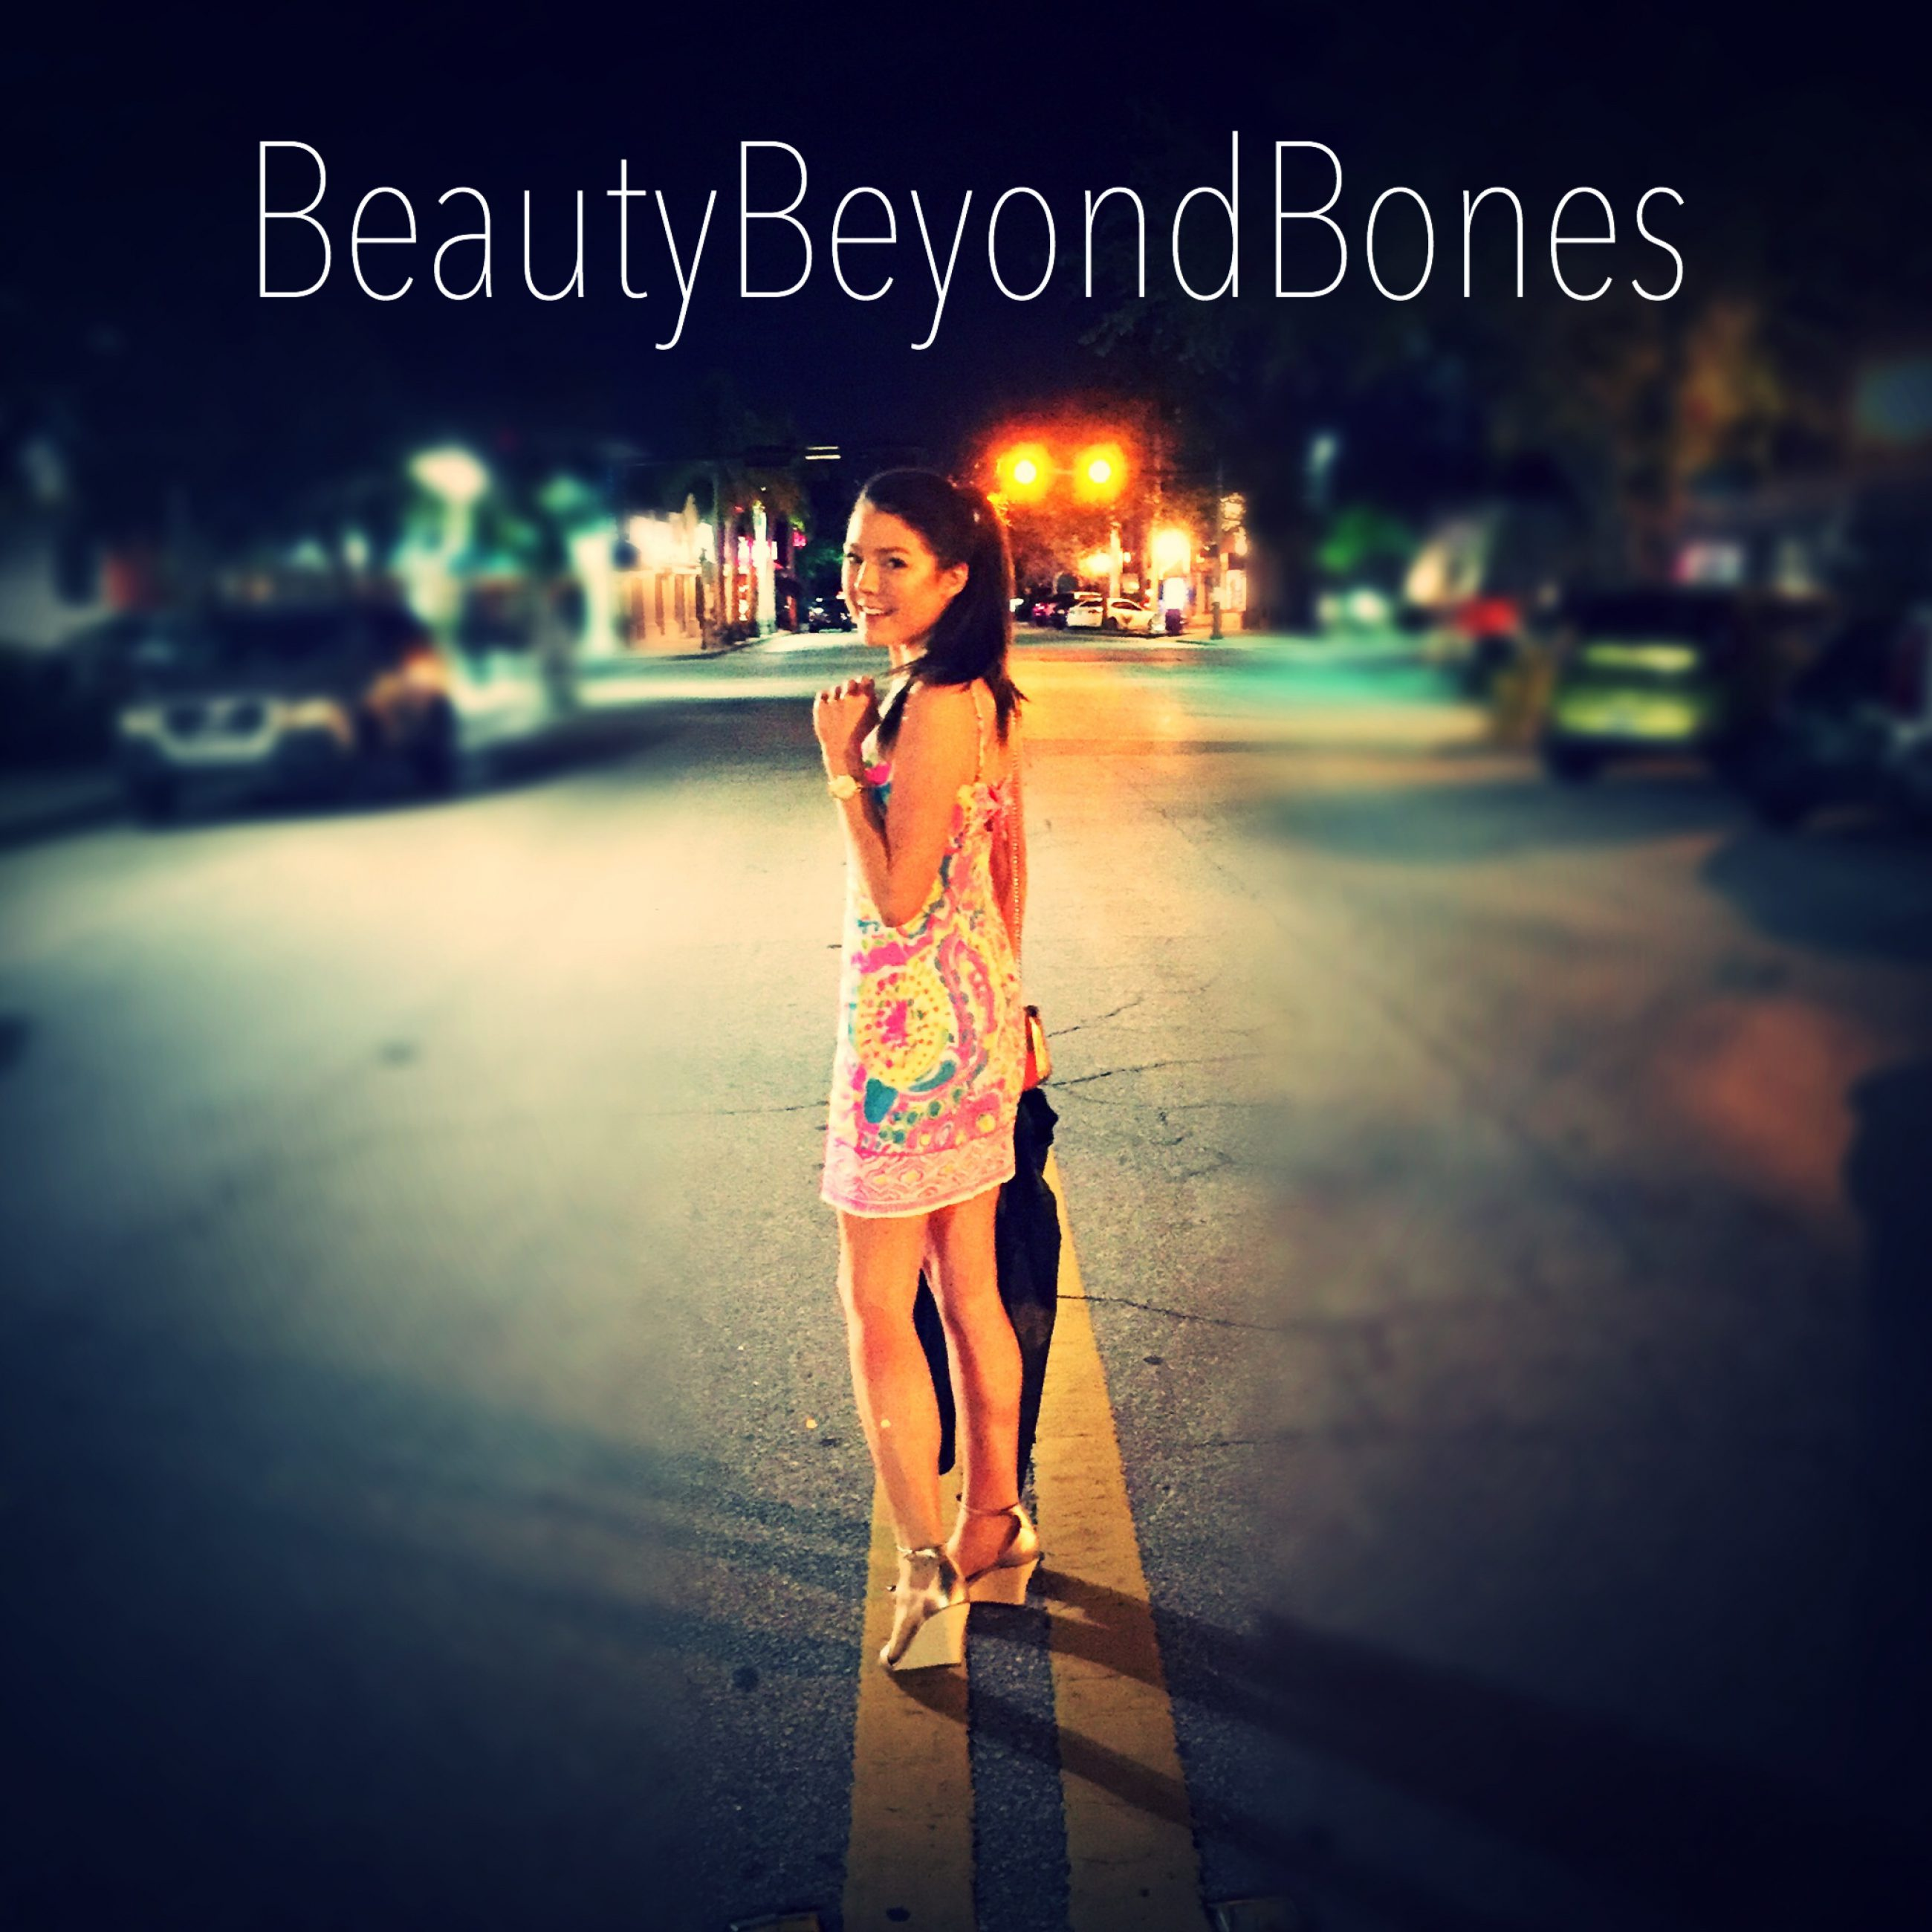 BeautyBeyondBones